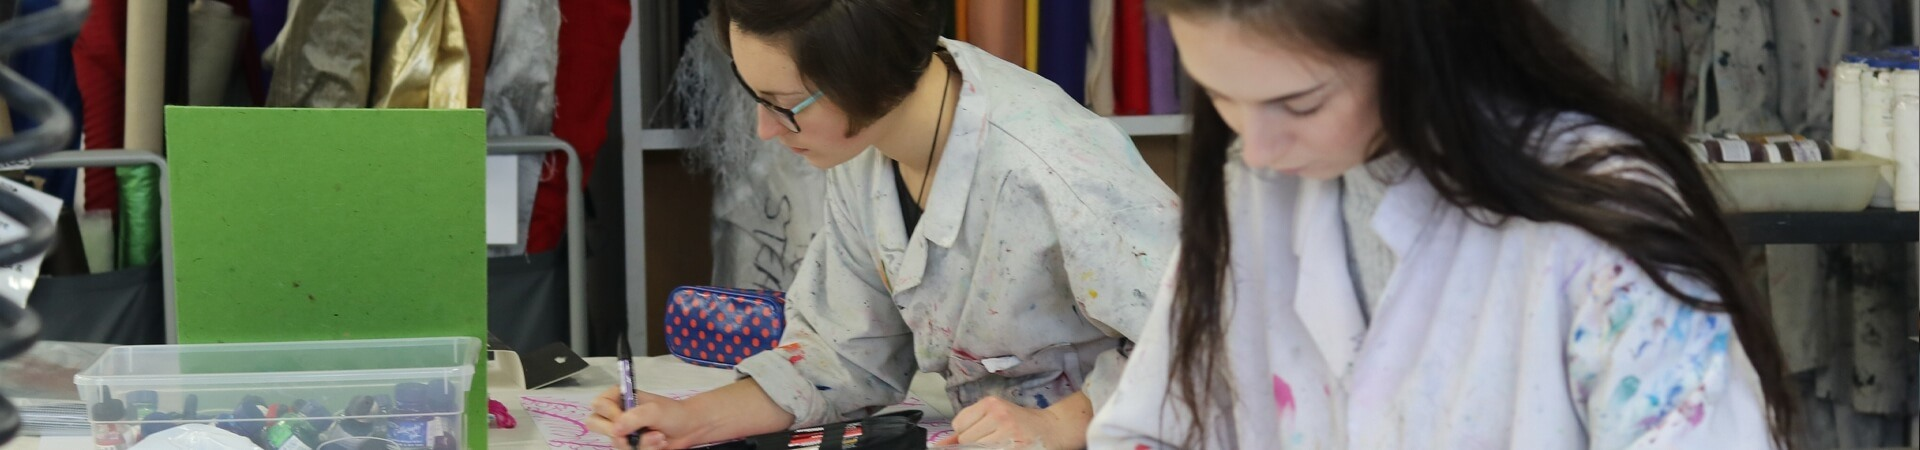 Students working in an Art and design lesson